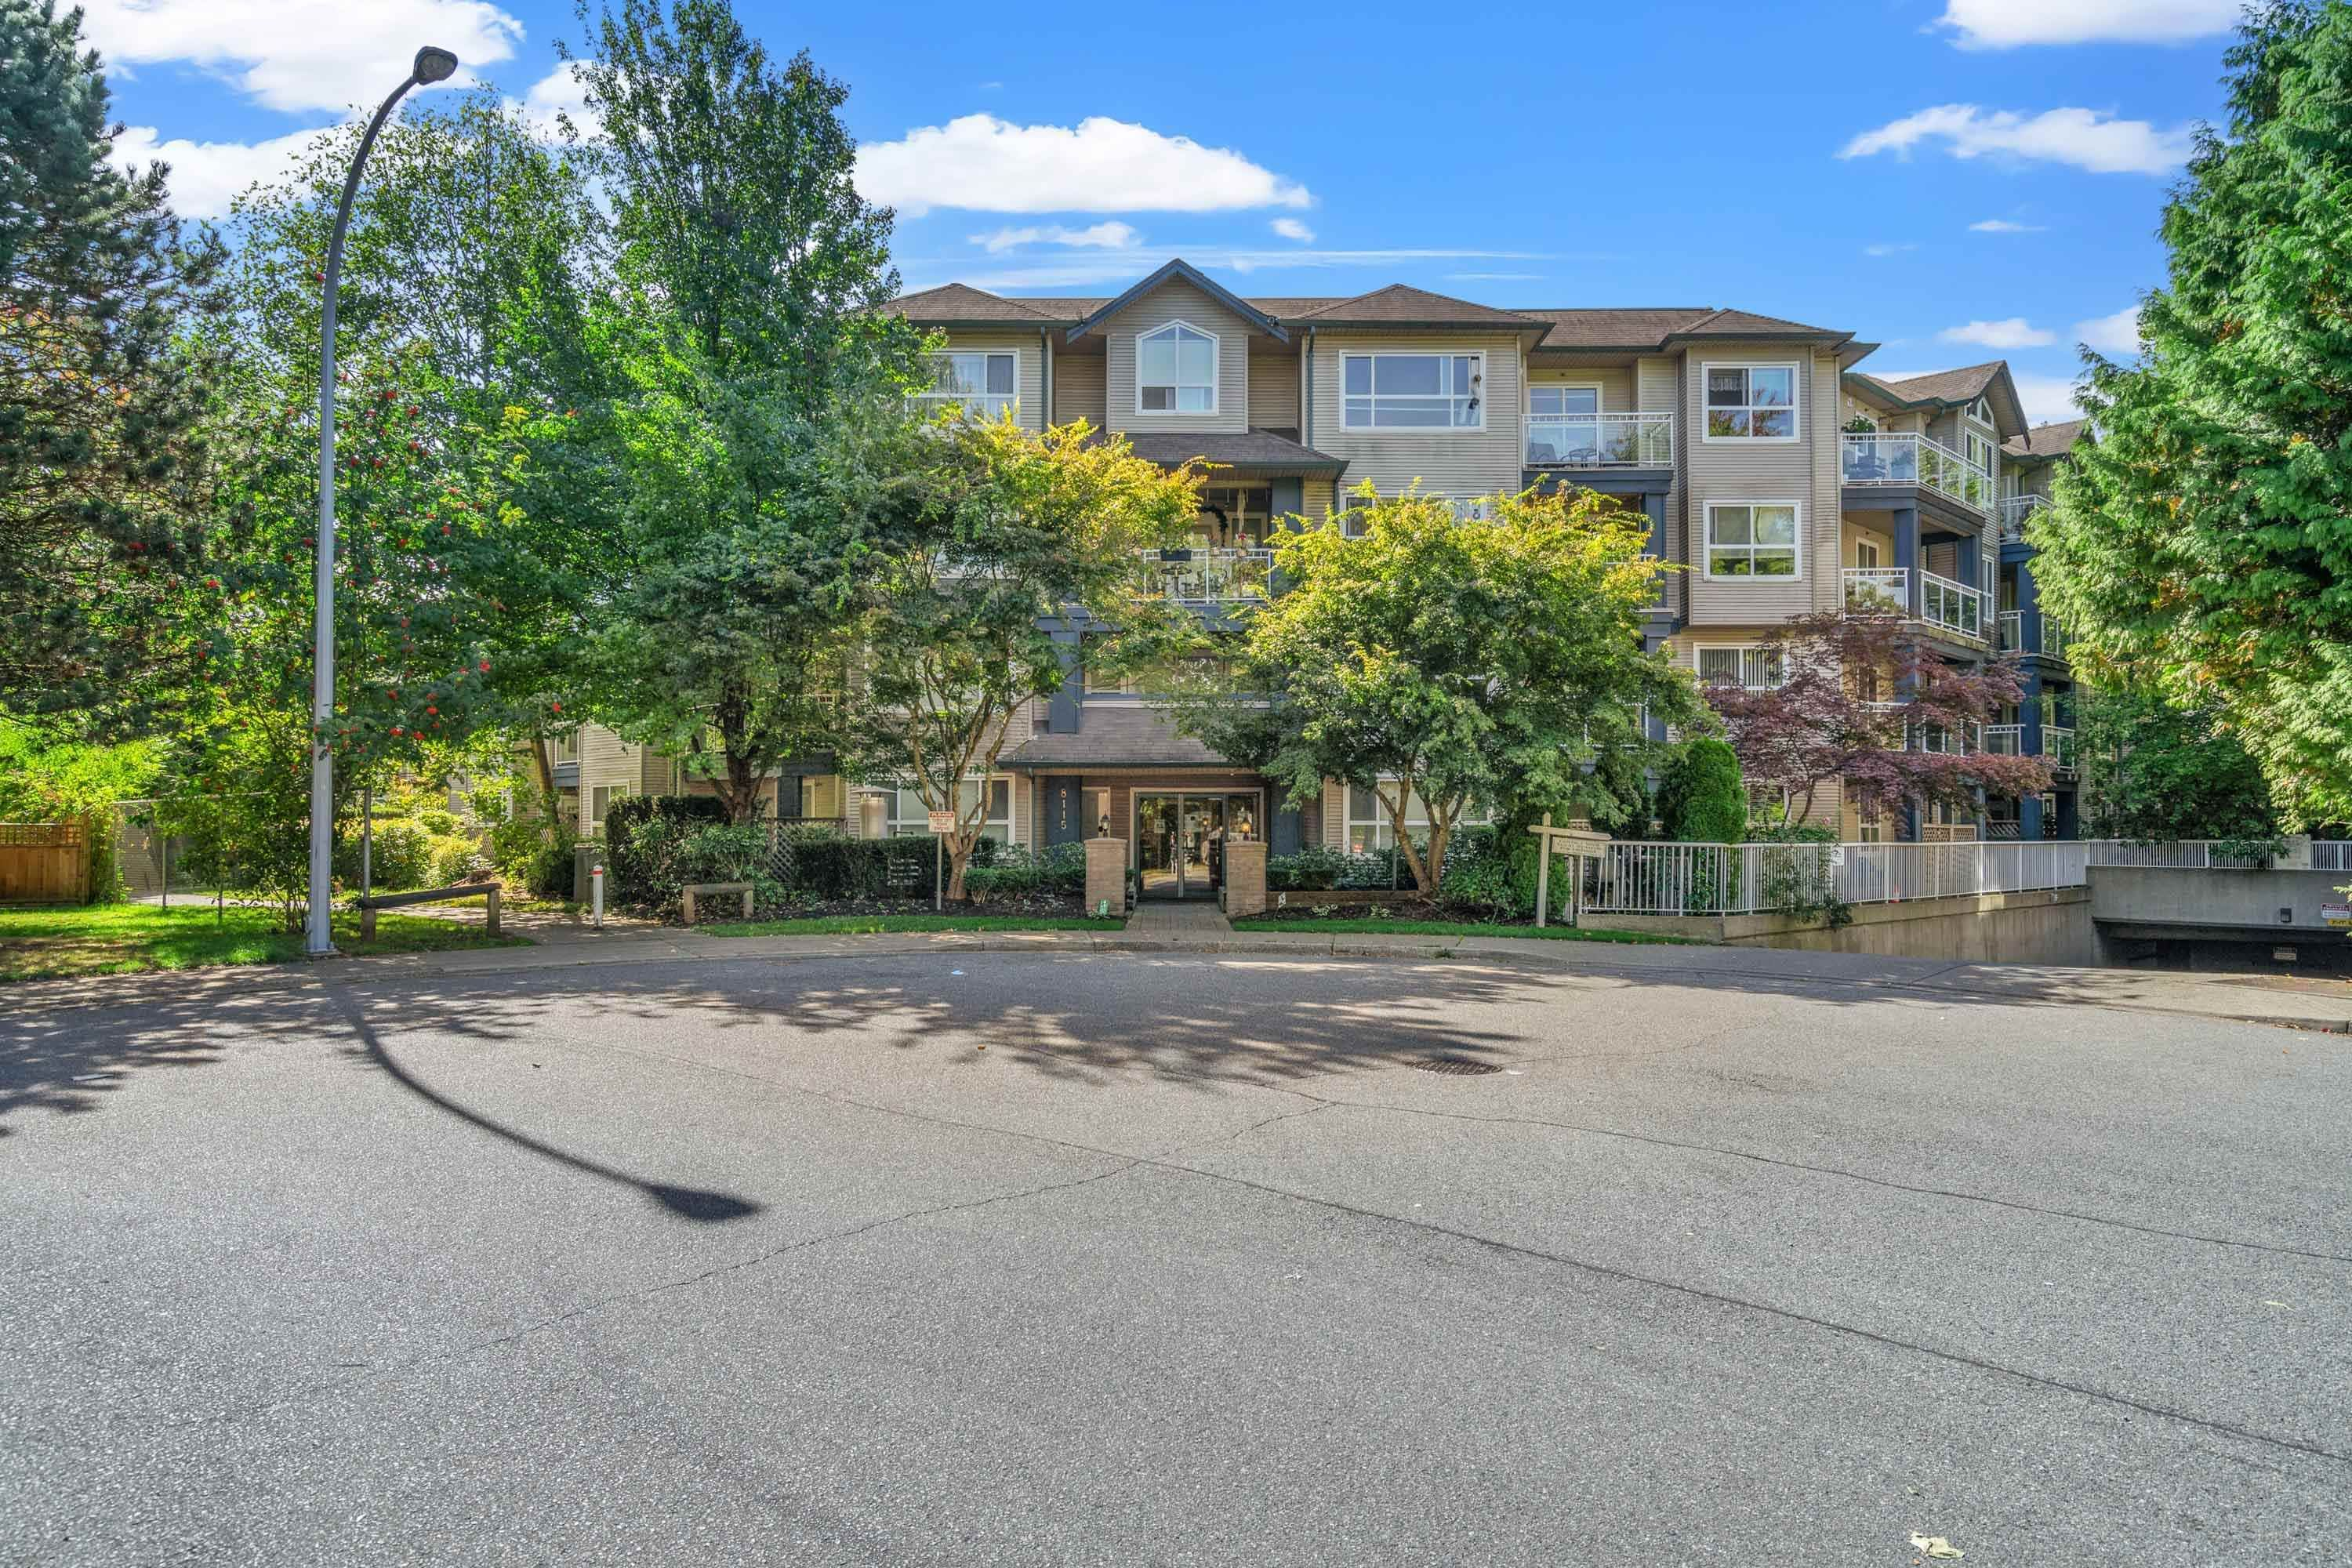 """Main Photo: 409 8115 121A Street in Surrey: Queen Mary Park Surrey Condo for sale in """"The Crossing"""" : MLS®# R2619545"""